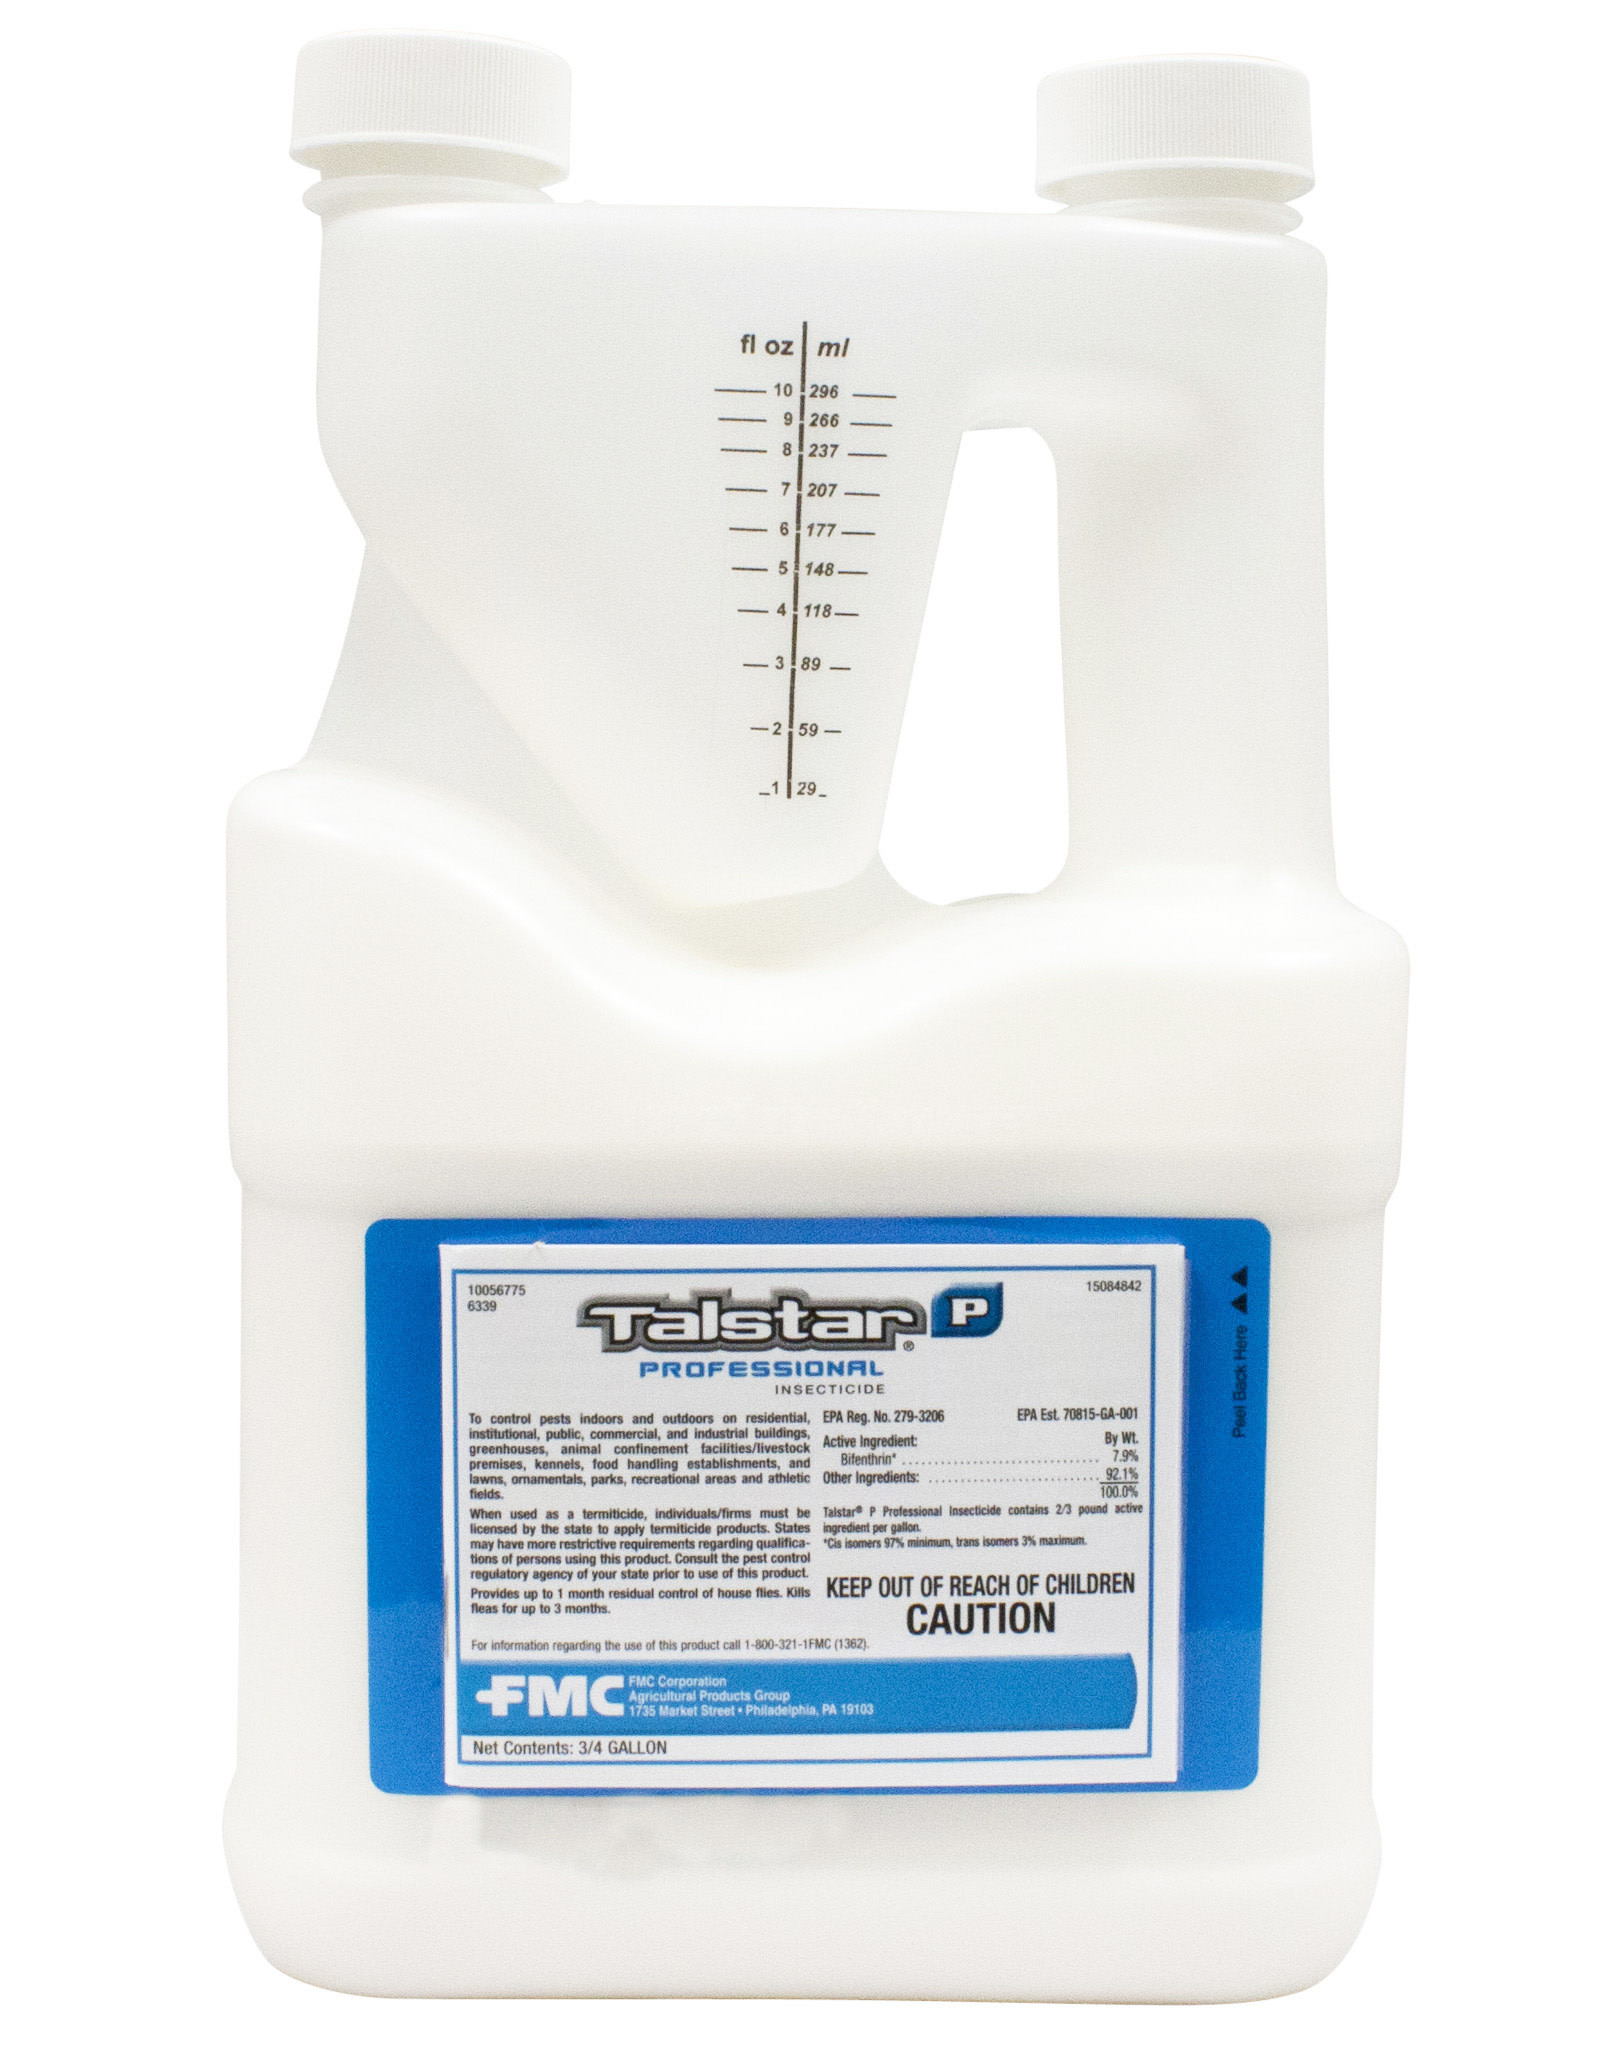 Talstar TALSTAR Professional Insecticide Tip and Pour Bifenthrin 7.9% 96 Oz